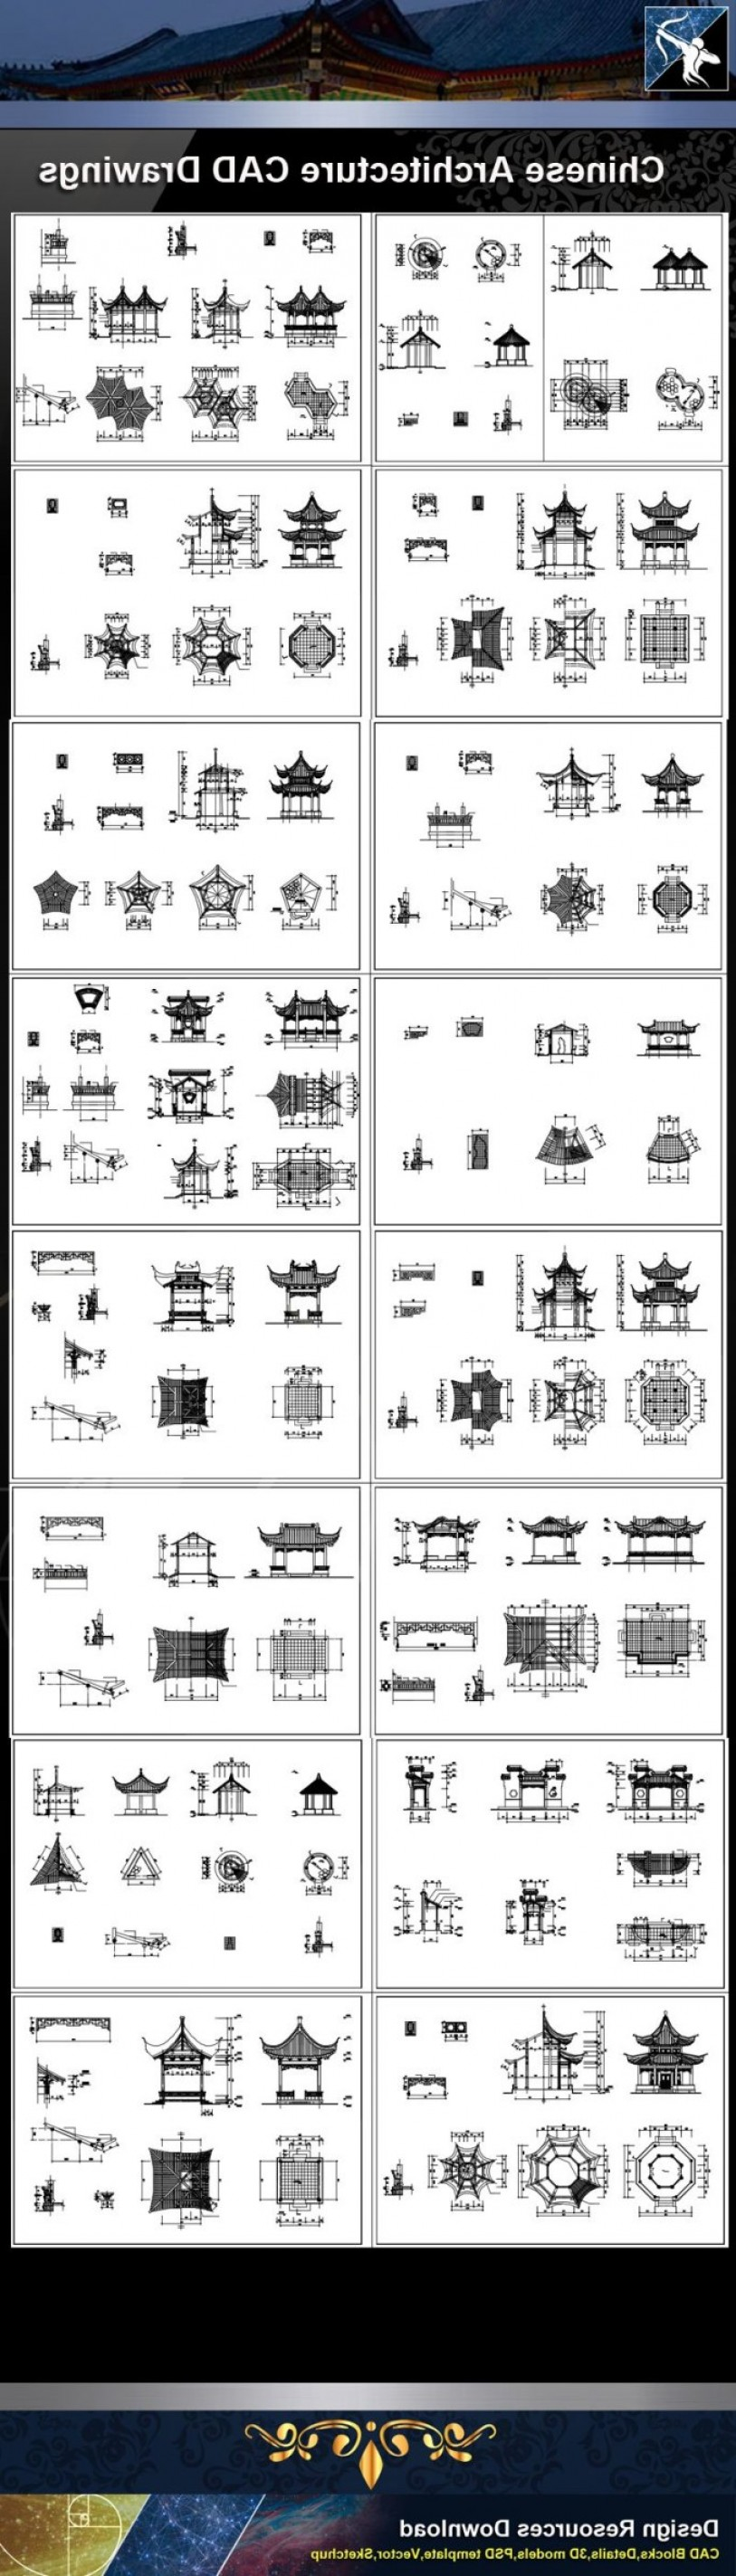 Falcon 50 Vector 2D CAD Drawings: Eechinese Architecture Cad Drawingsechinese Pavilion Drawingscad Detailselevation